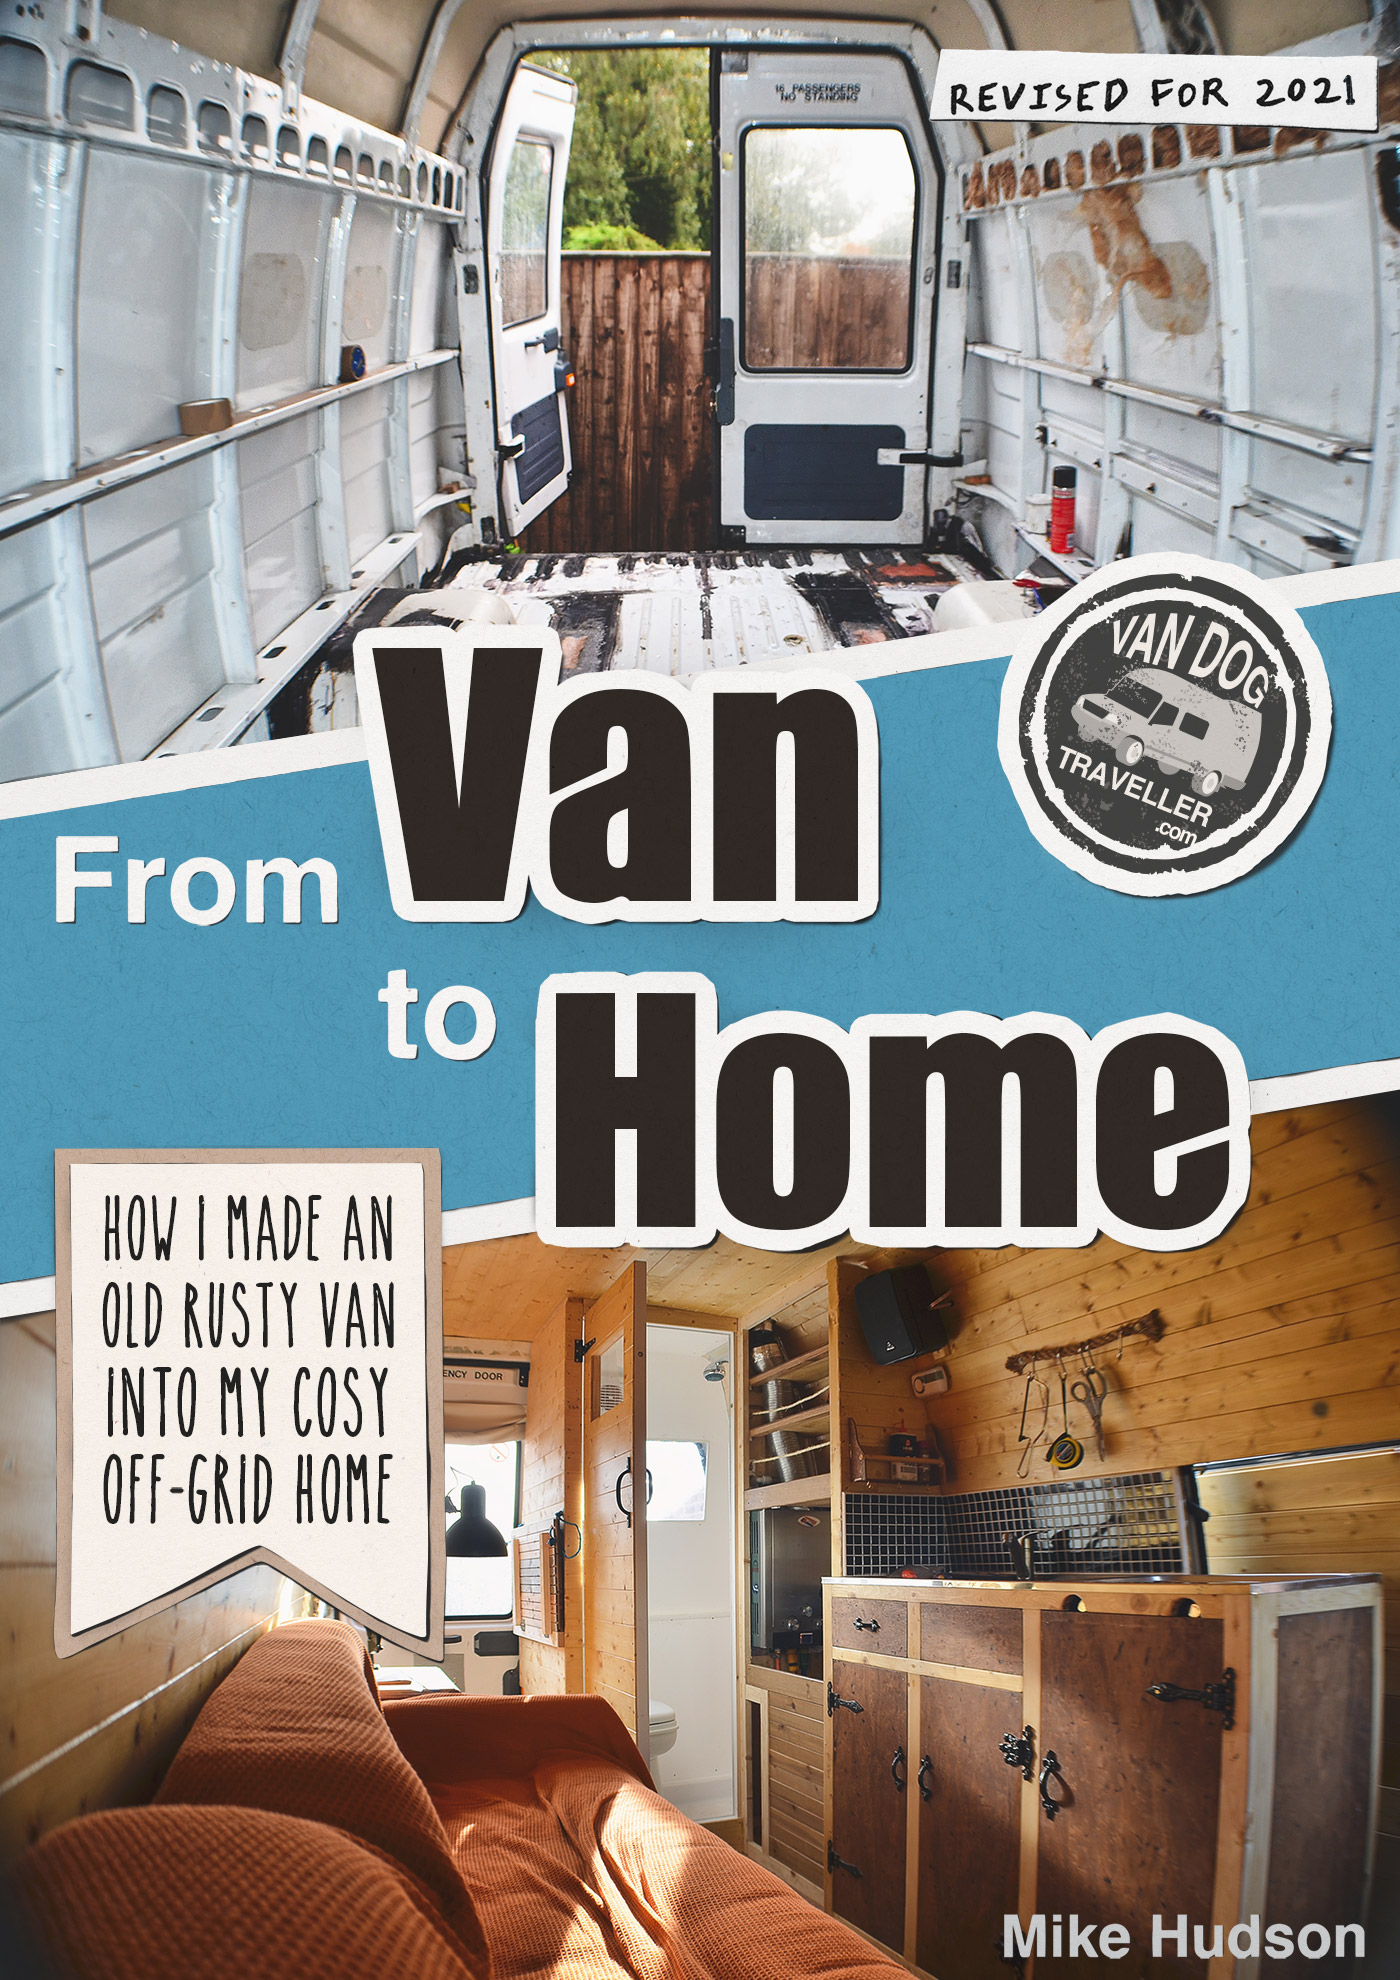 From Van to Home ebook cover